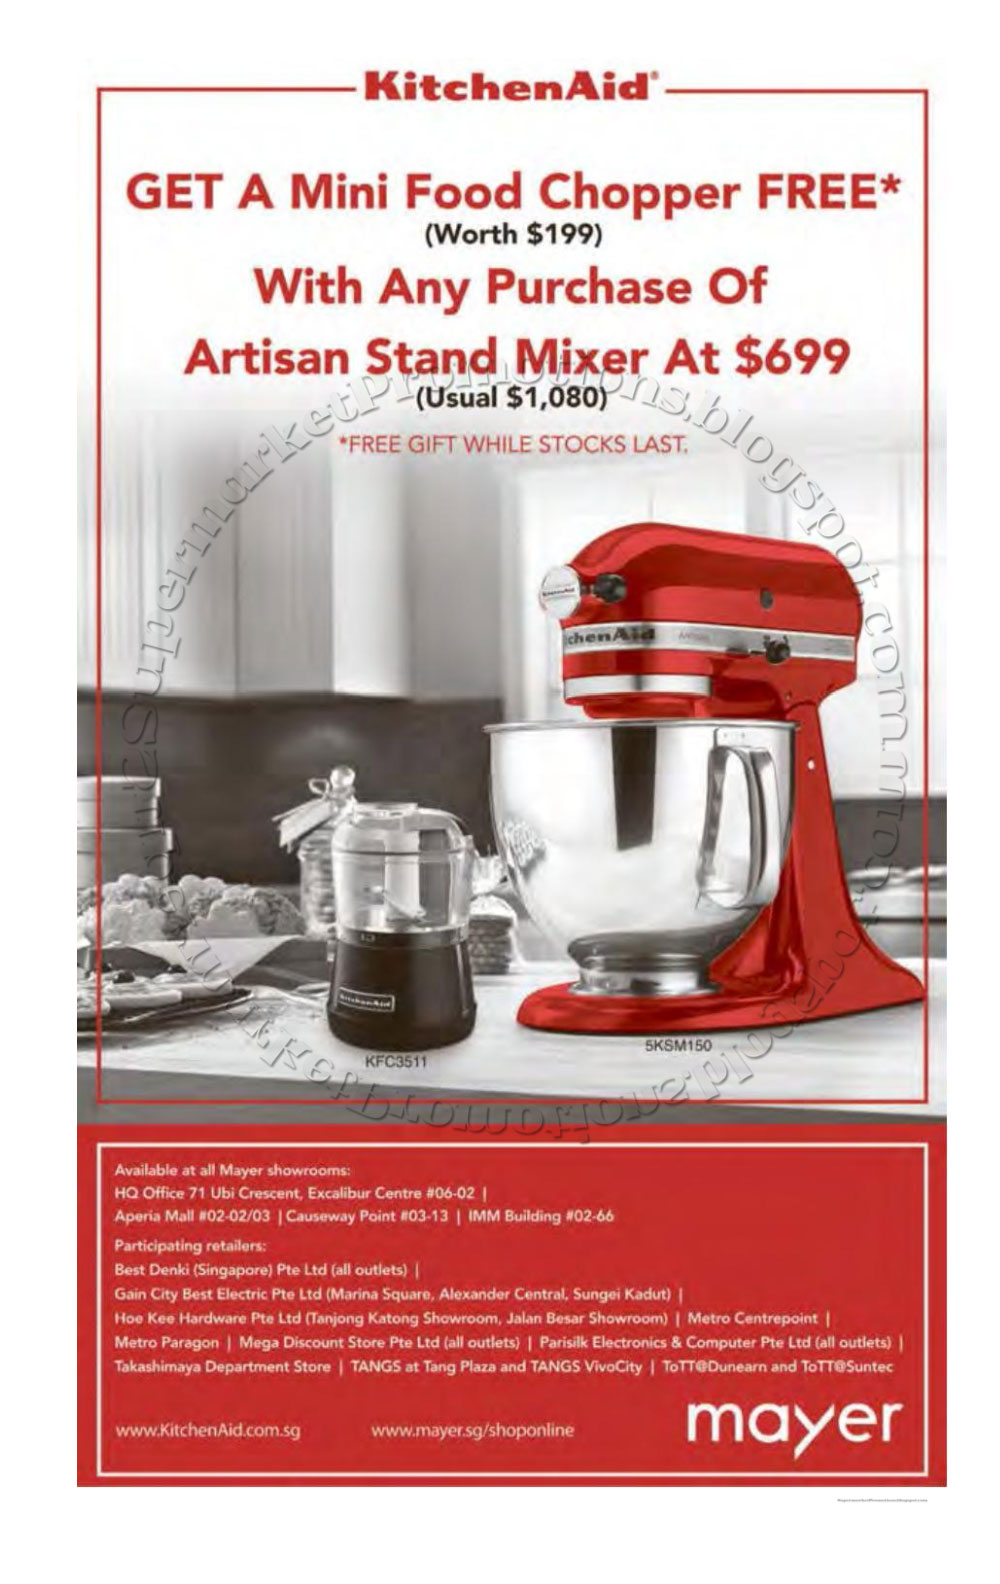 Bon Mayer Kitchenaid Promotion 24 June 2016 Supermarket Promotions